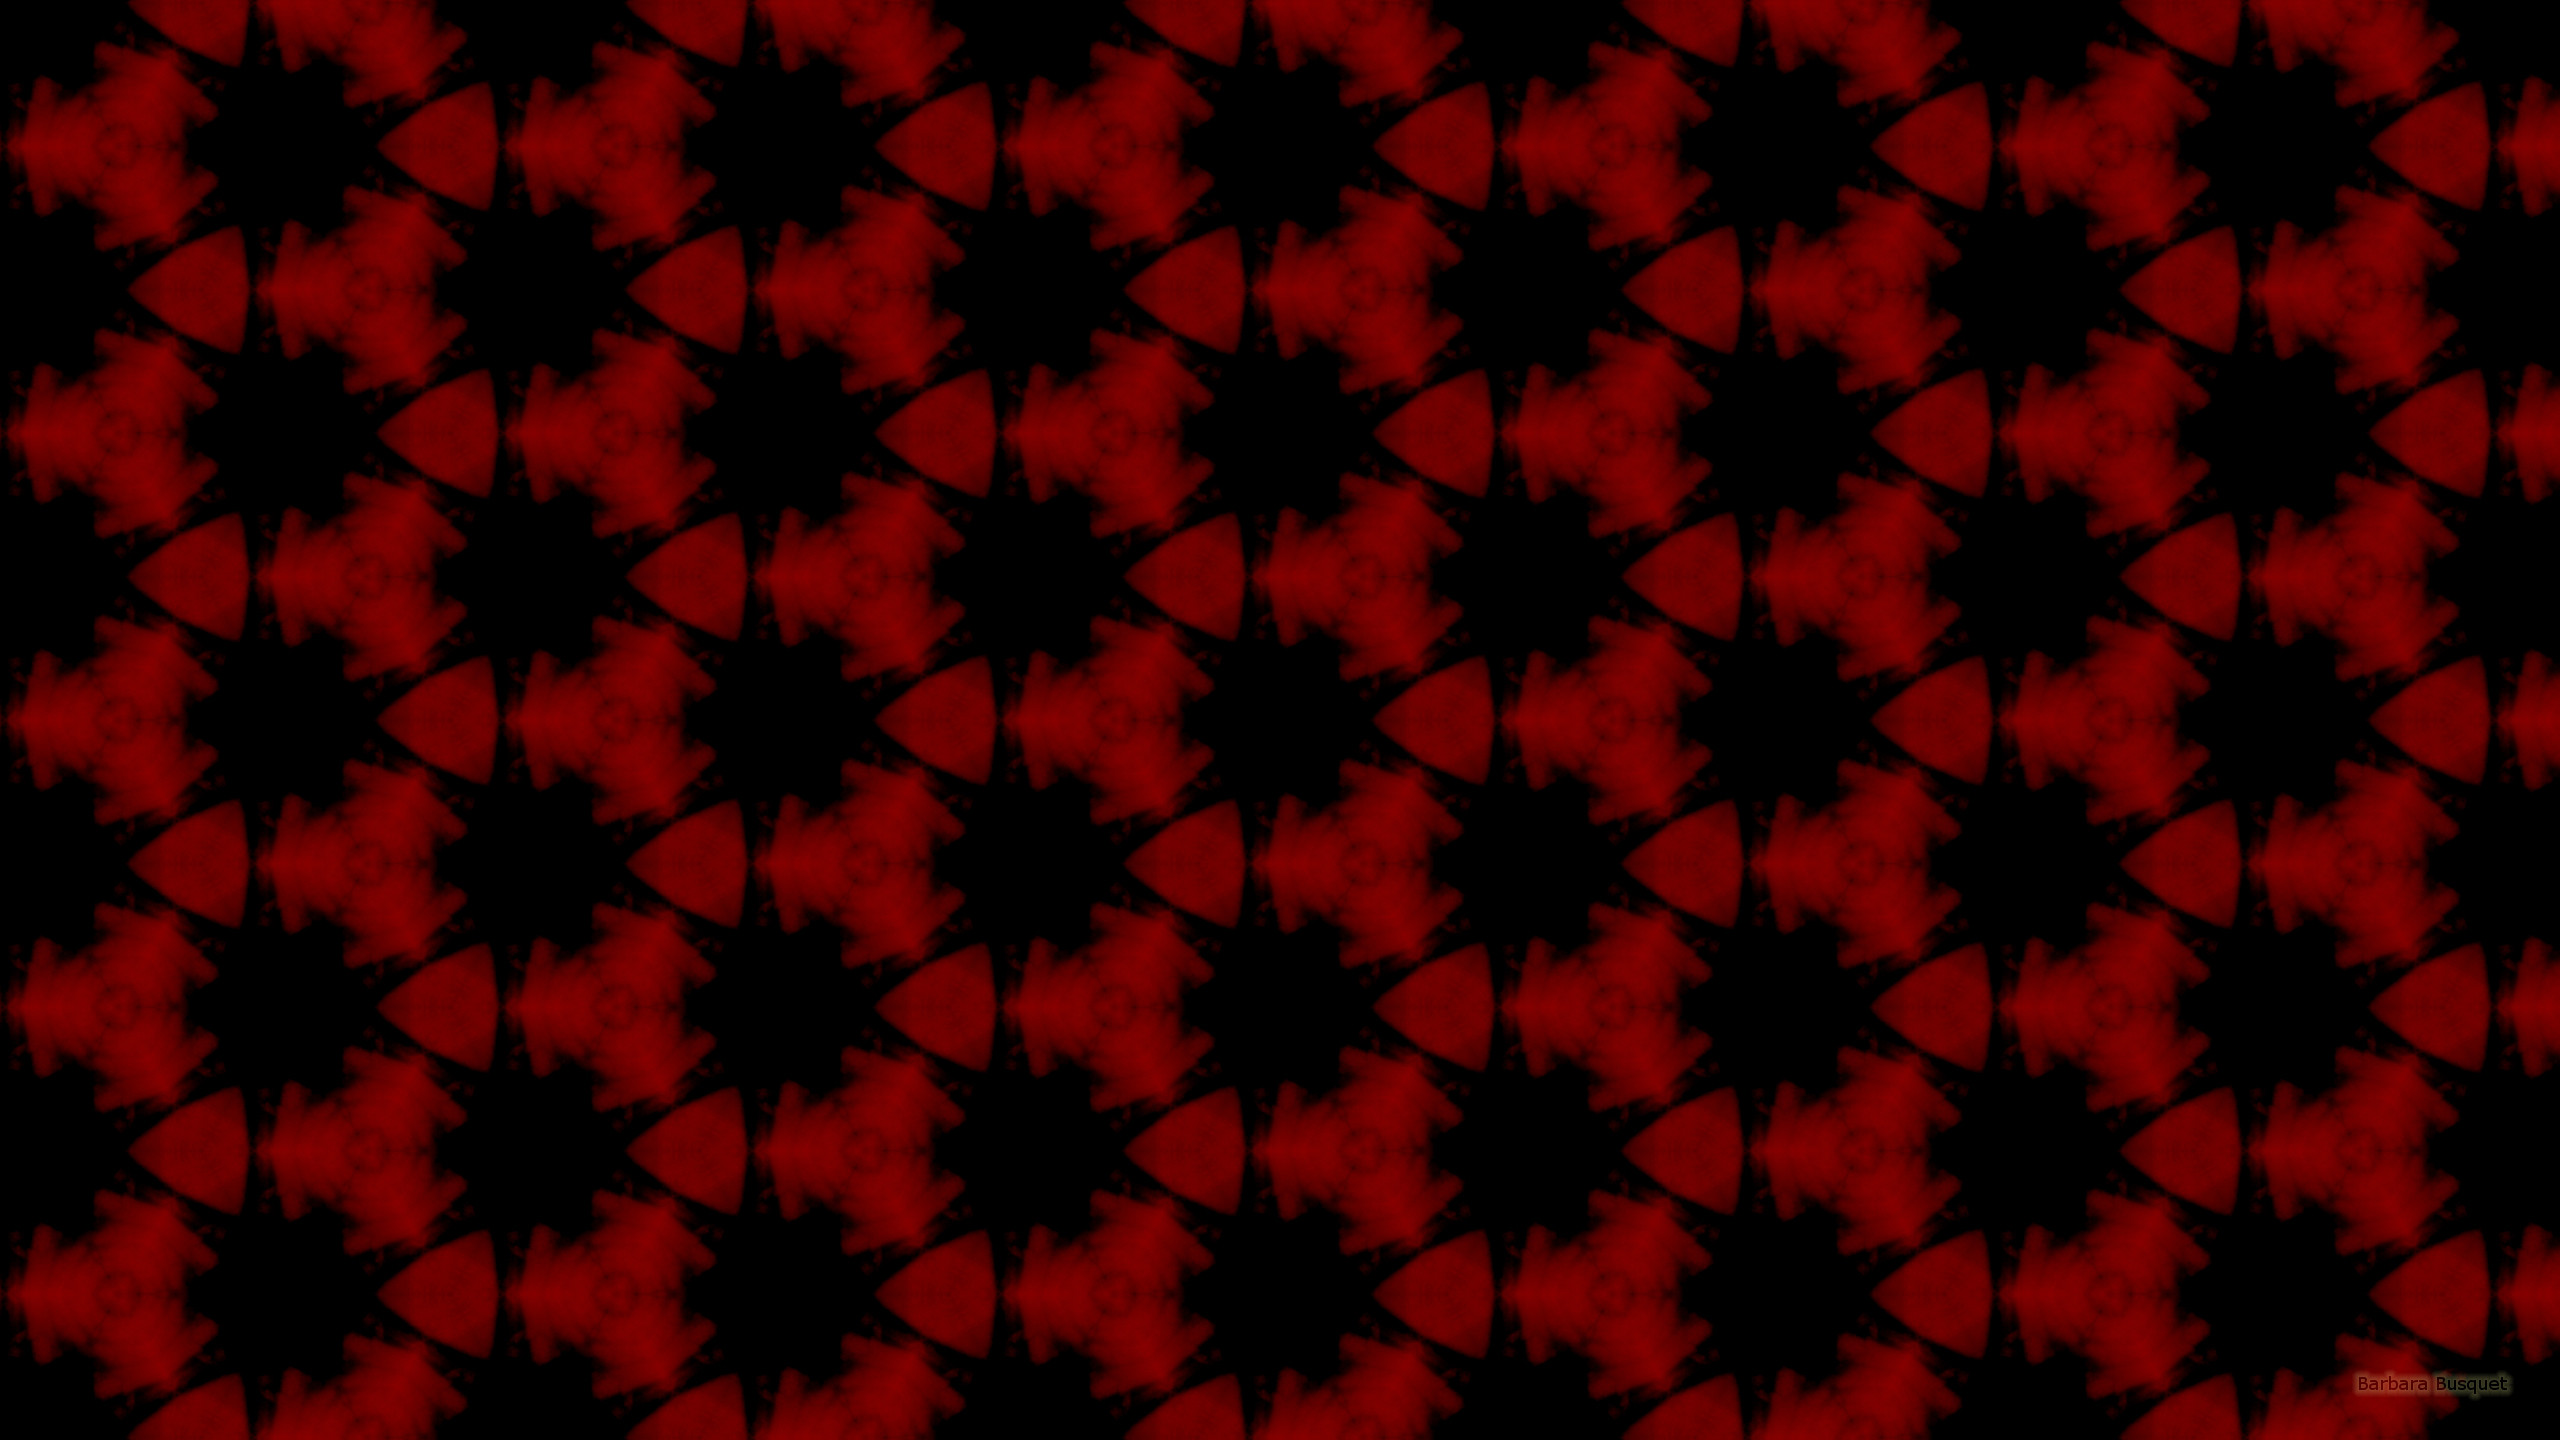 Mysterious Red Black Wallpaper Barbara S Hd Wallpapers